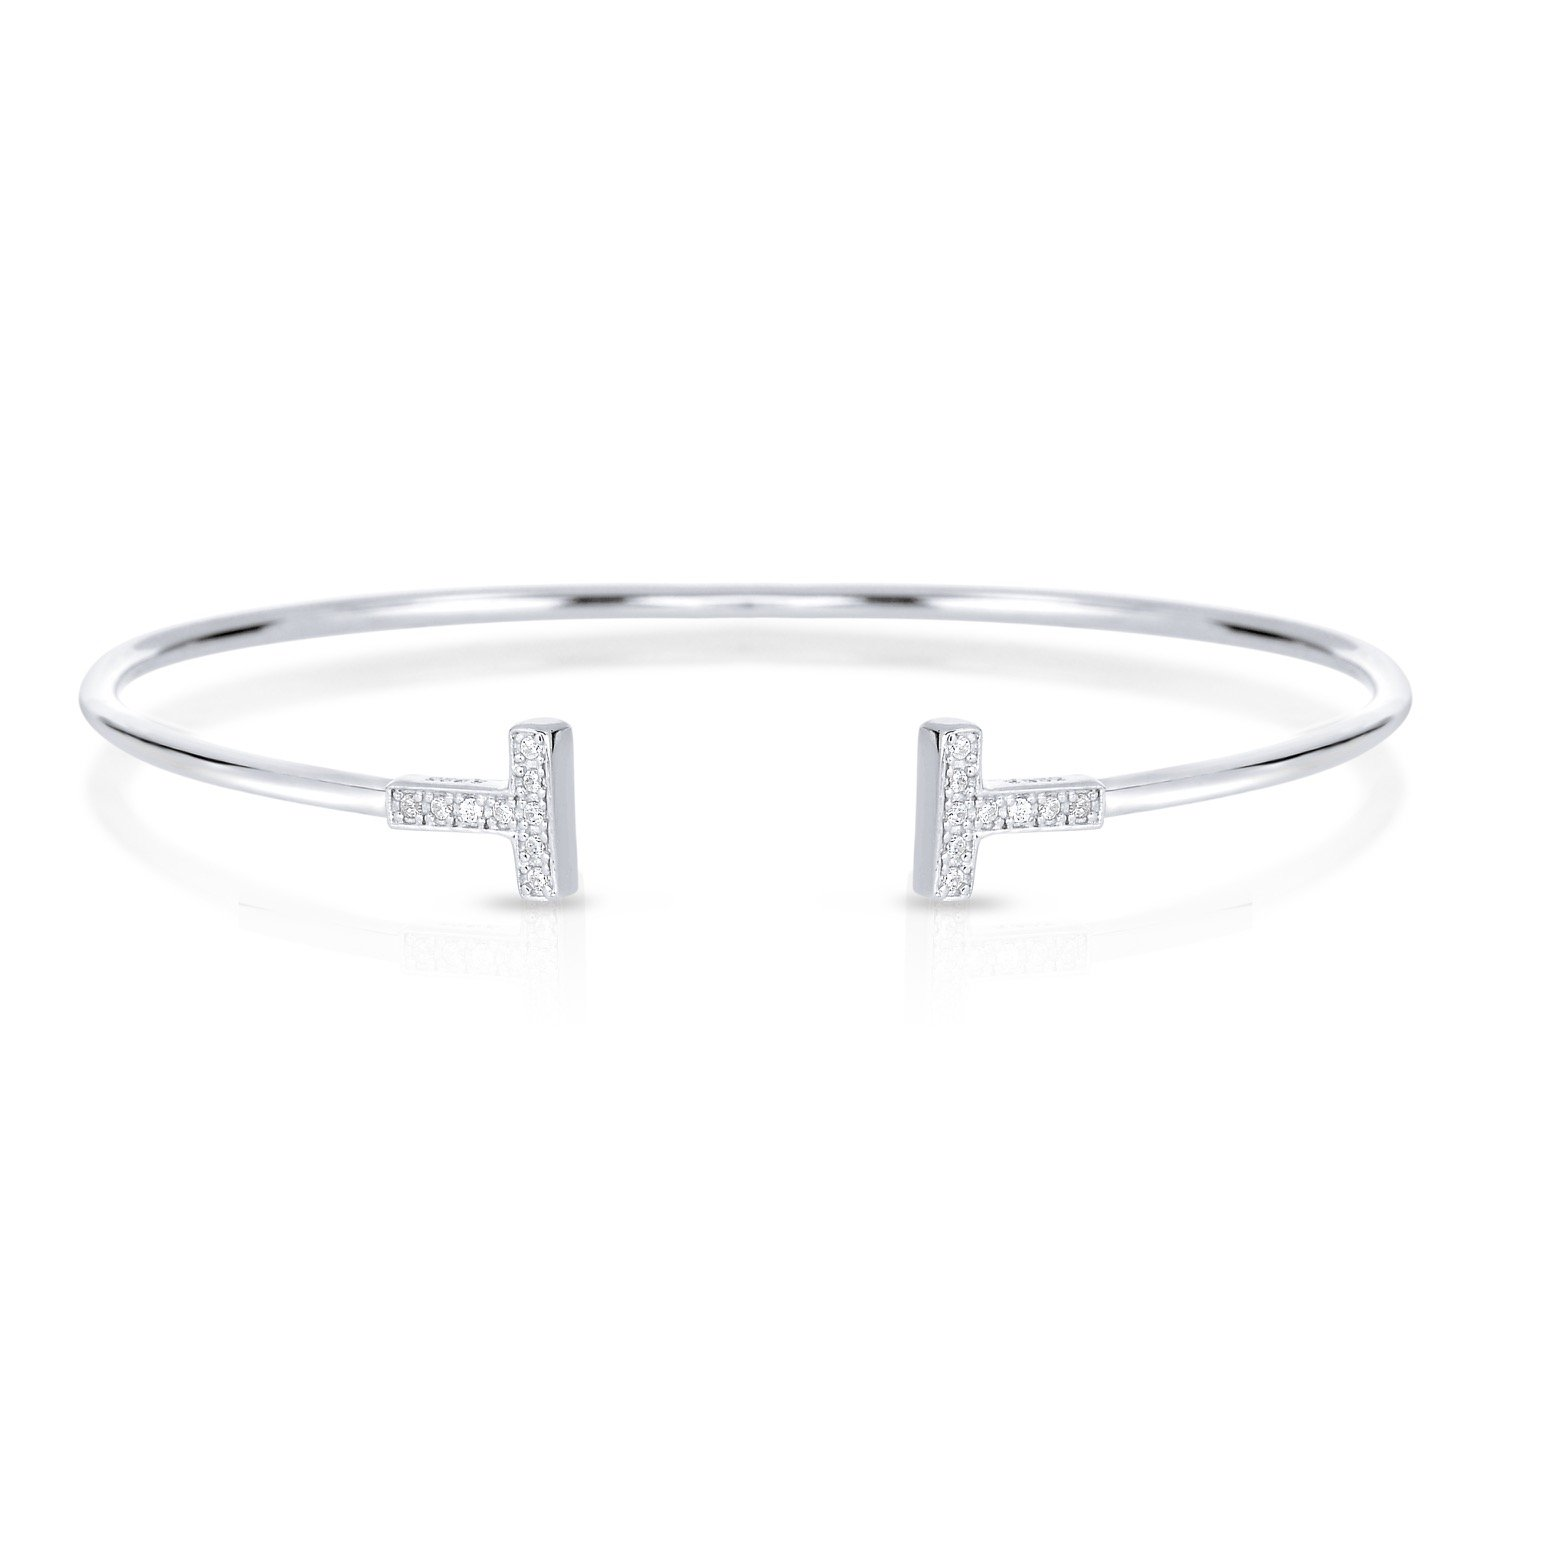 Sterling Silver Double Bar T Bracelet with White Cubic Zirconia